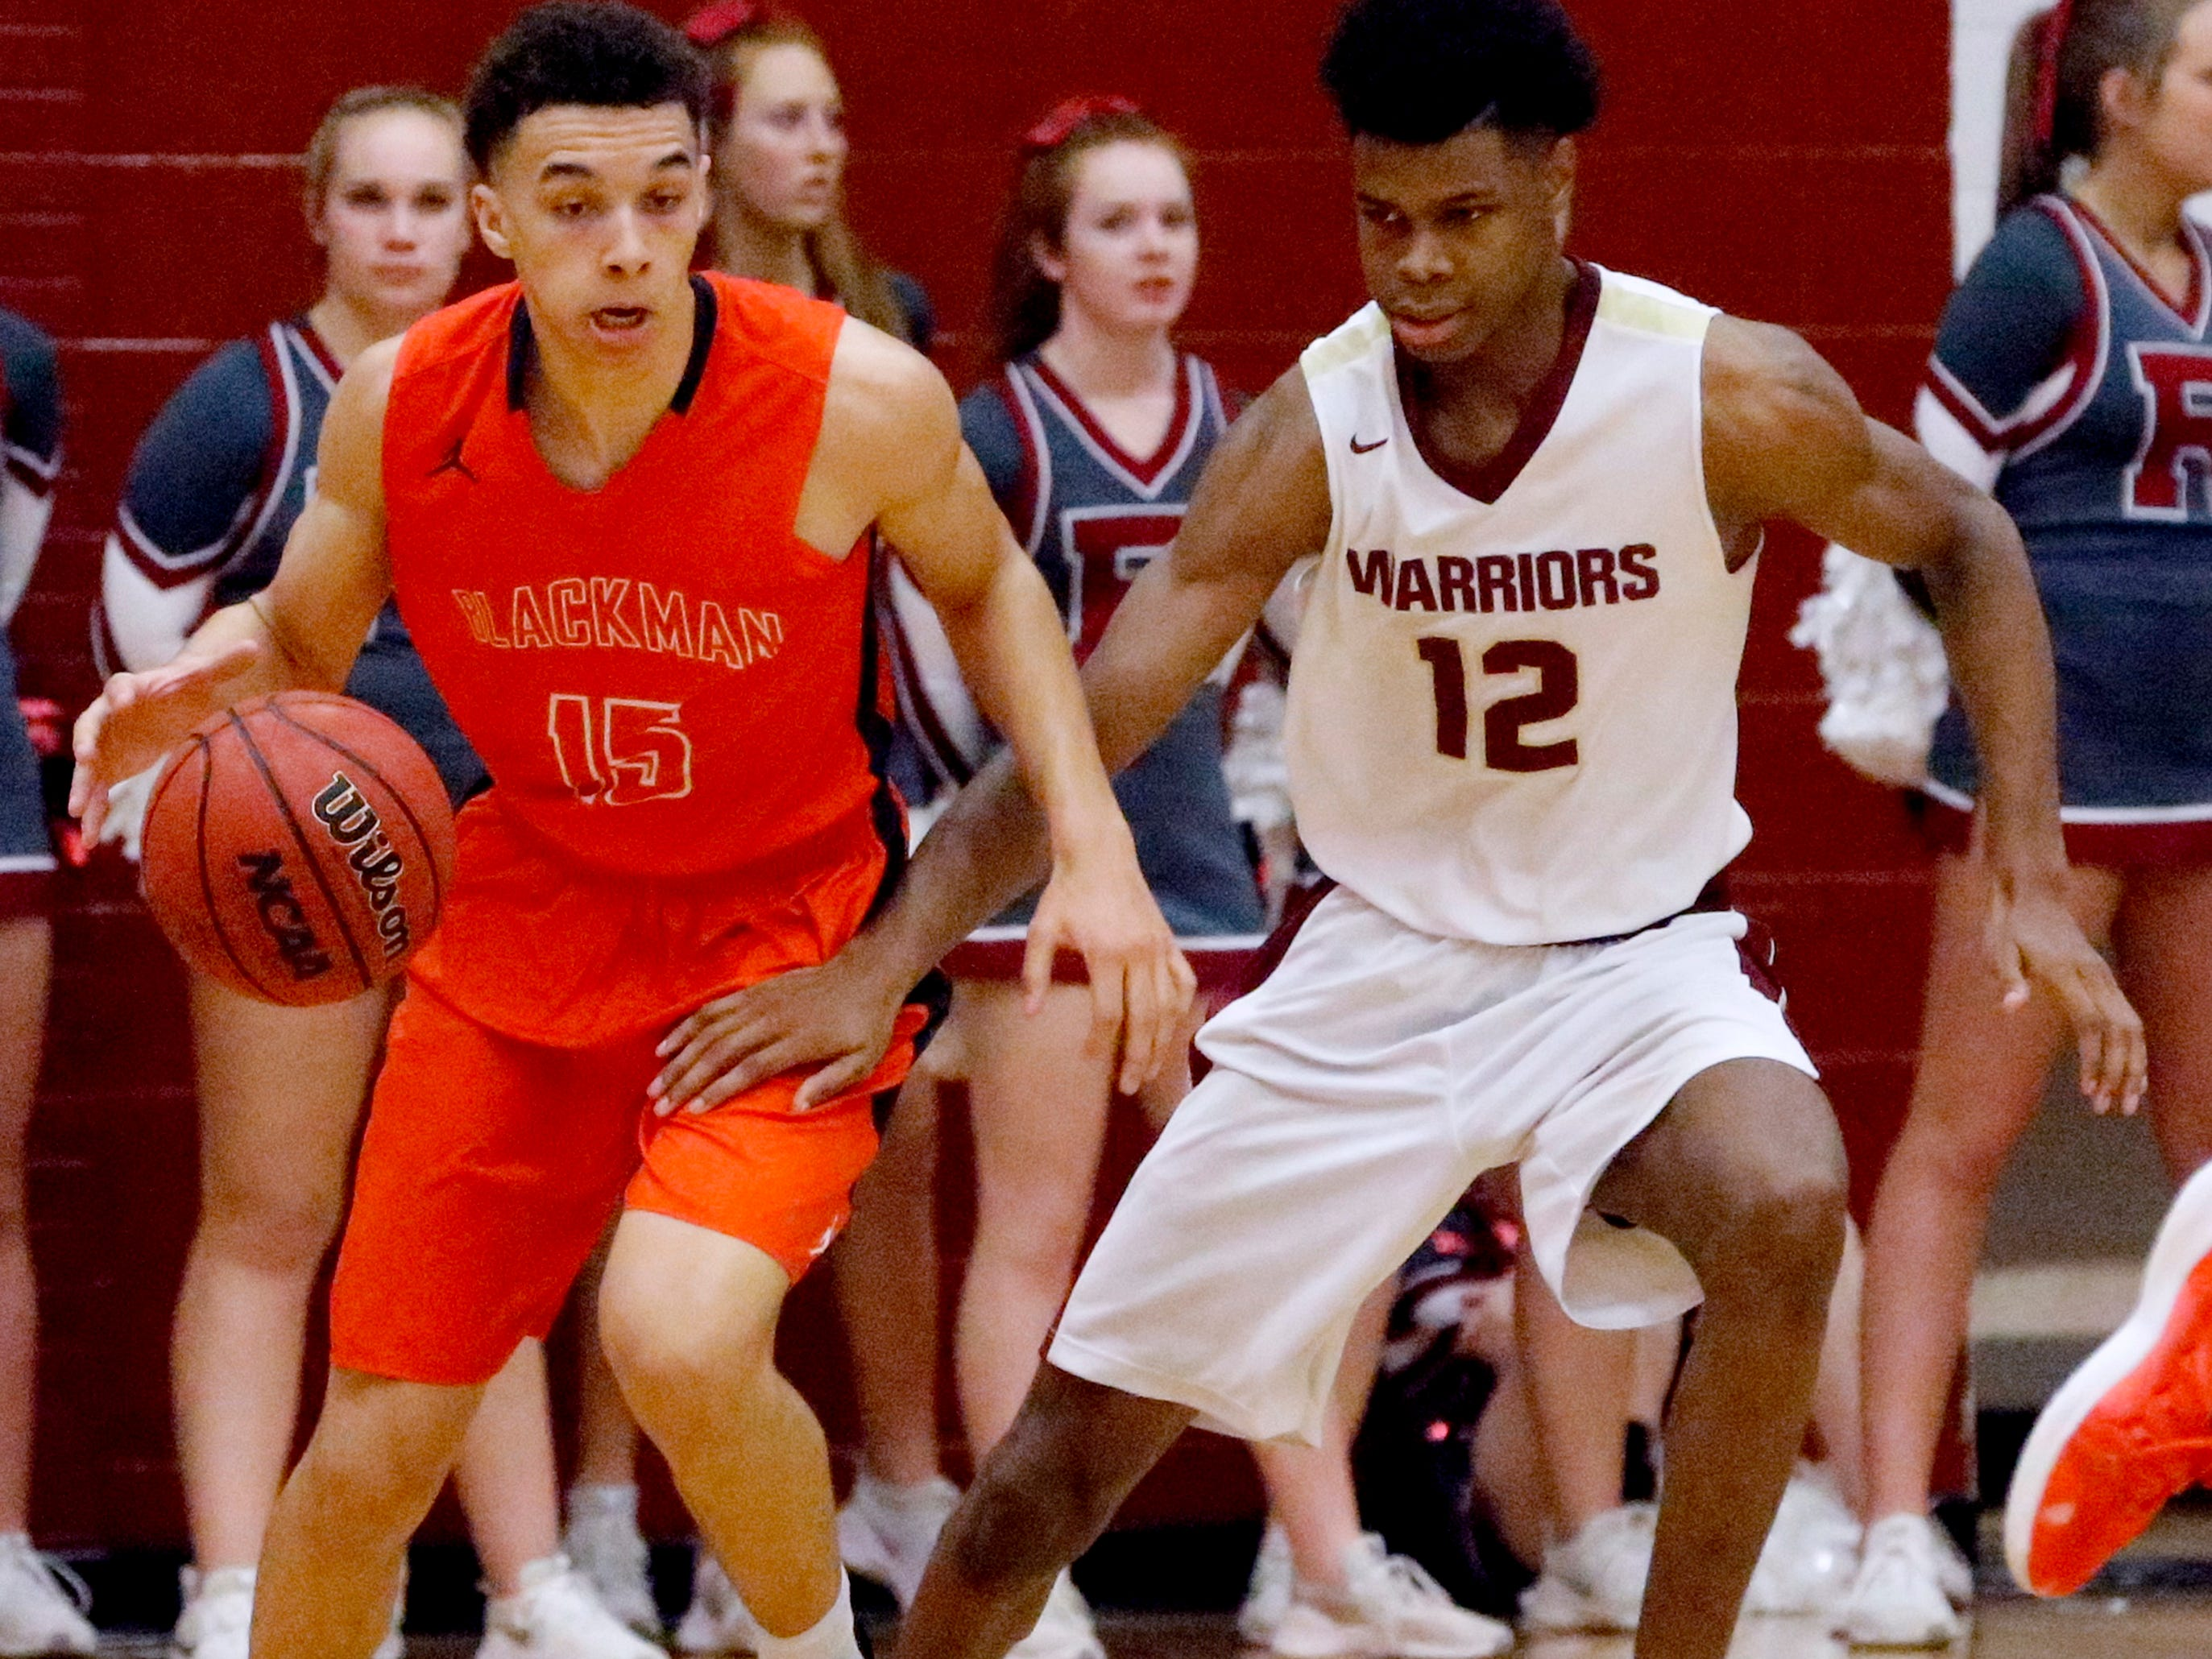 Blackman's Jalen Page (15) brings the ball up the court as Riverdale's Elijah Cobb (12) guards him up the court on Tuesday Jan. 8, 2019.